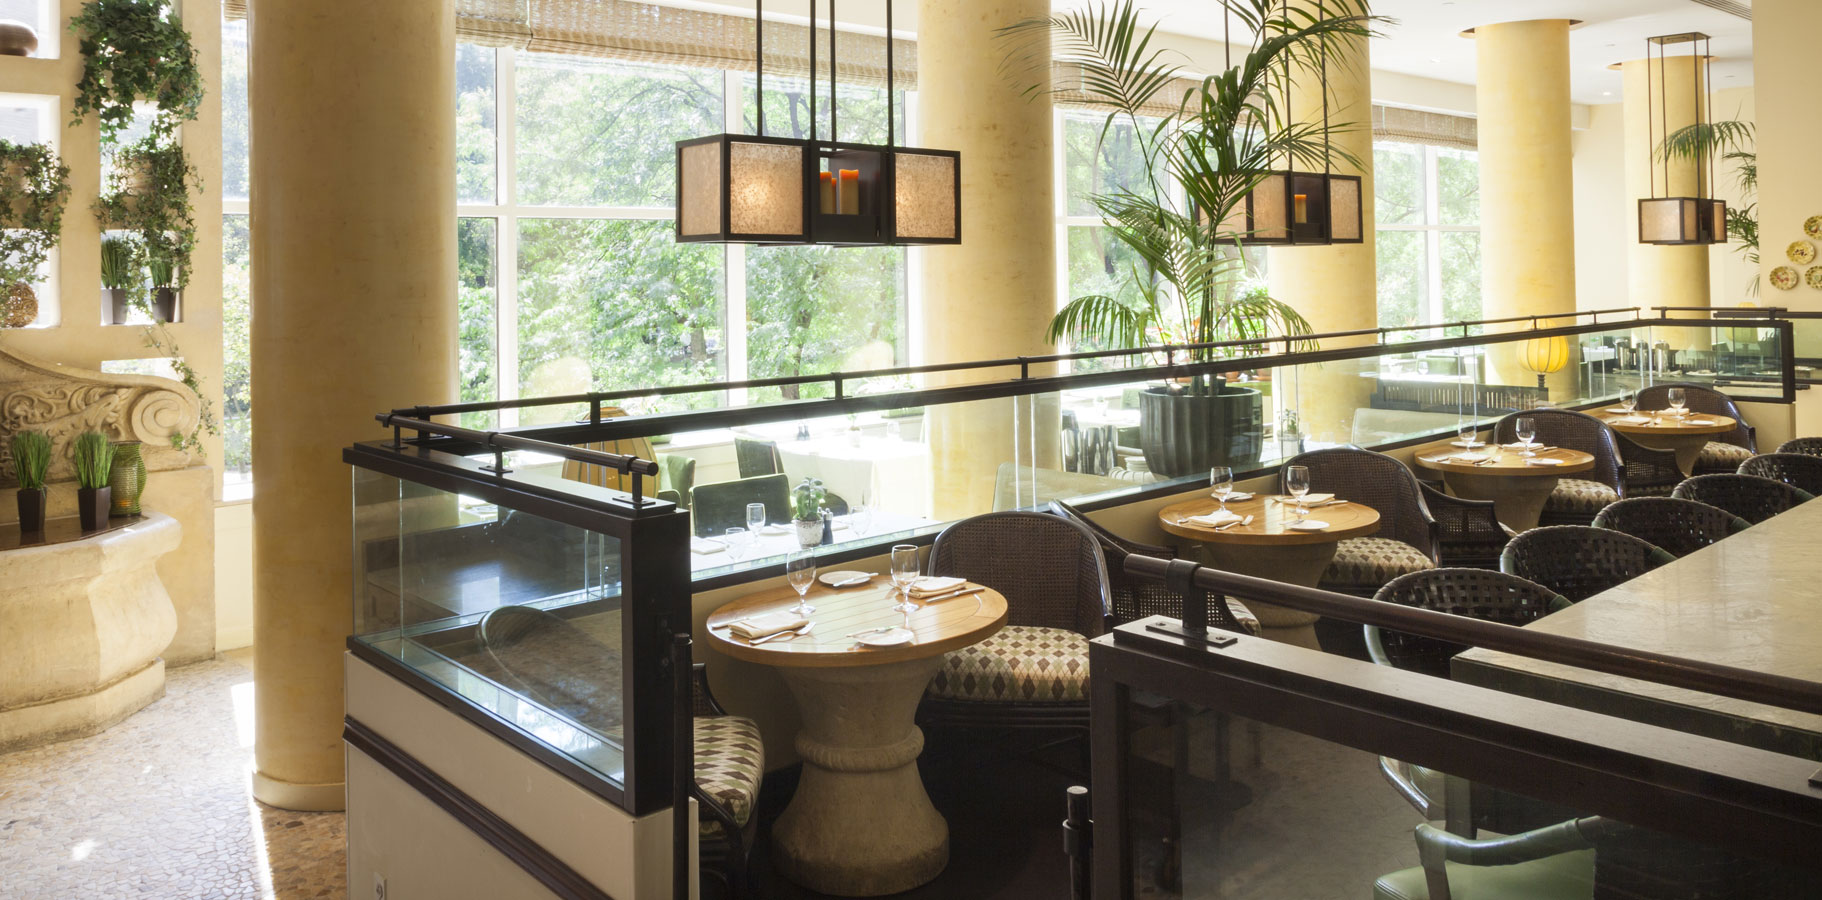 Lacroix Restaurant at The Rittenhouse Contact Us, Pennsylvania